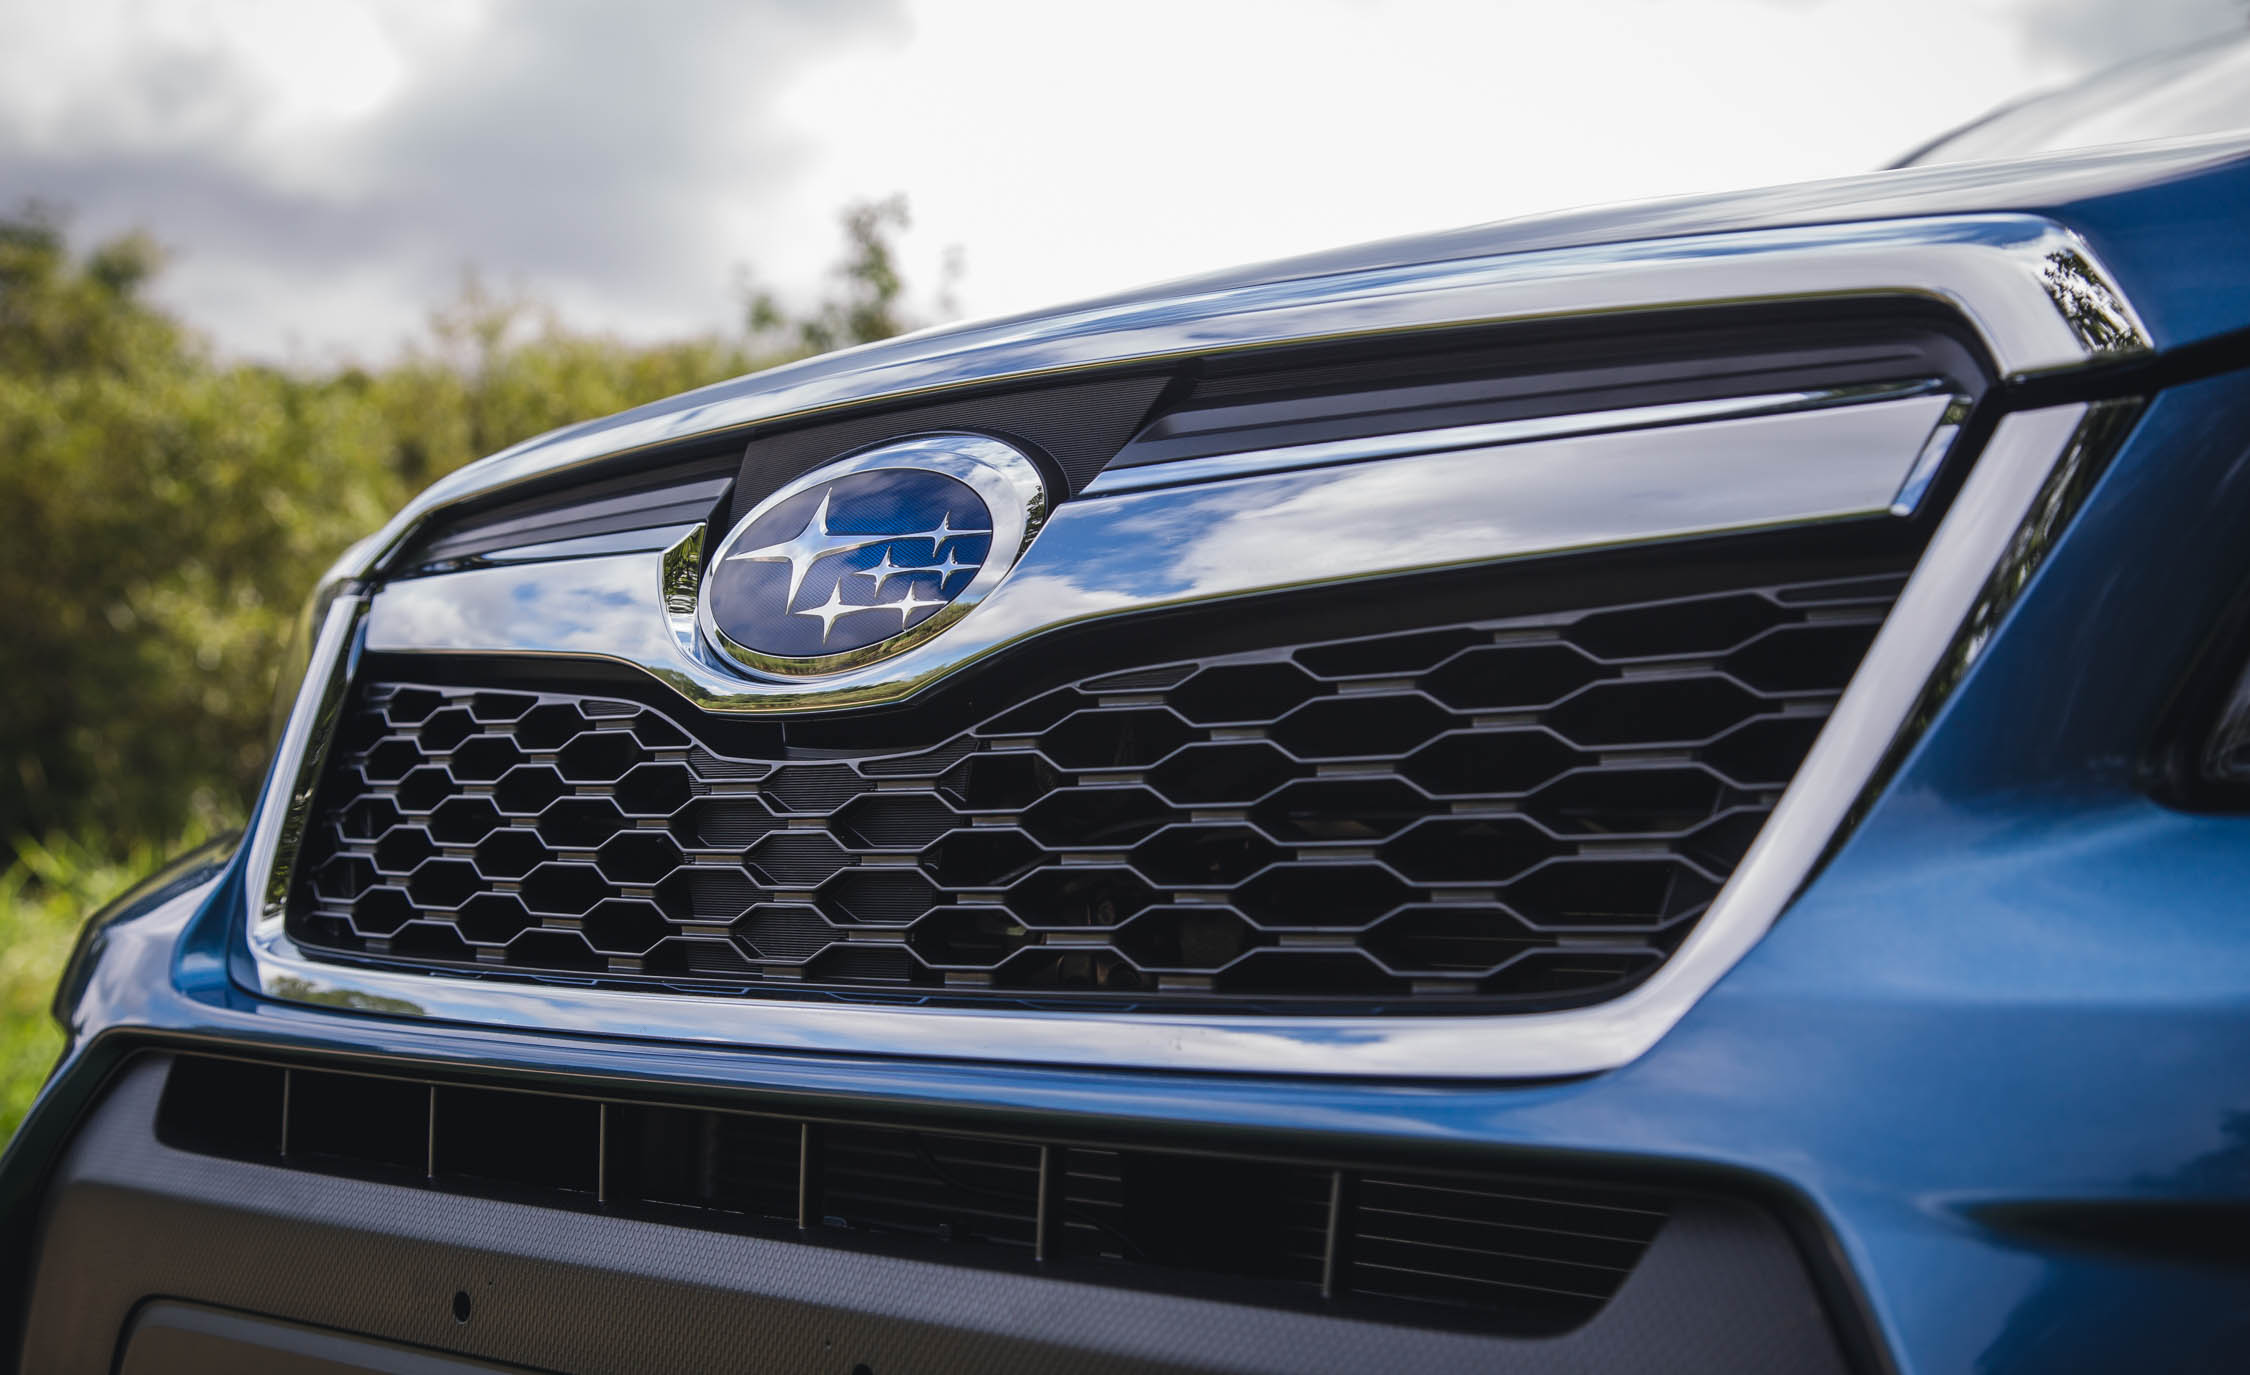 2016 Subaru Forester 2 0xt Touring Exterior Grille (View 27 of 29)